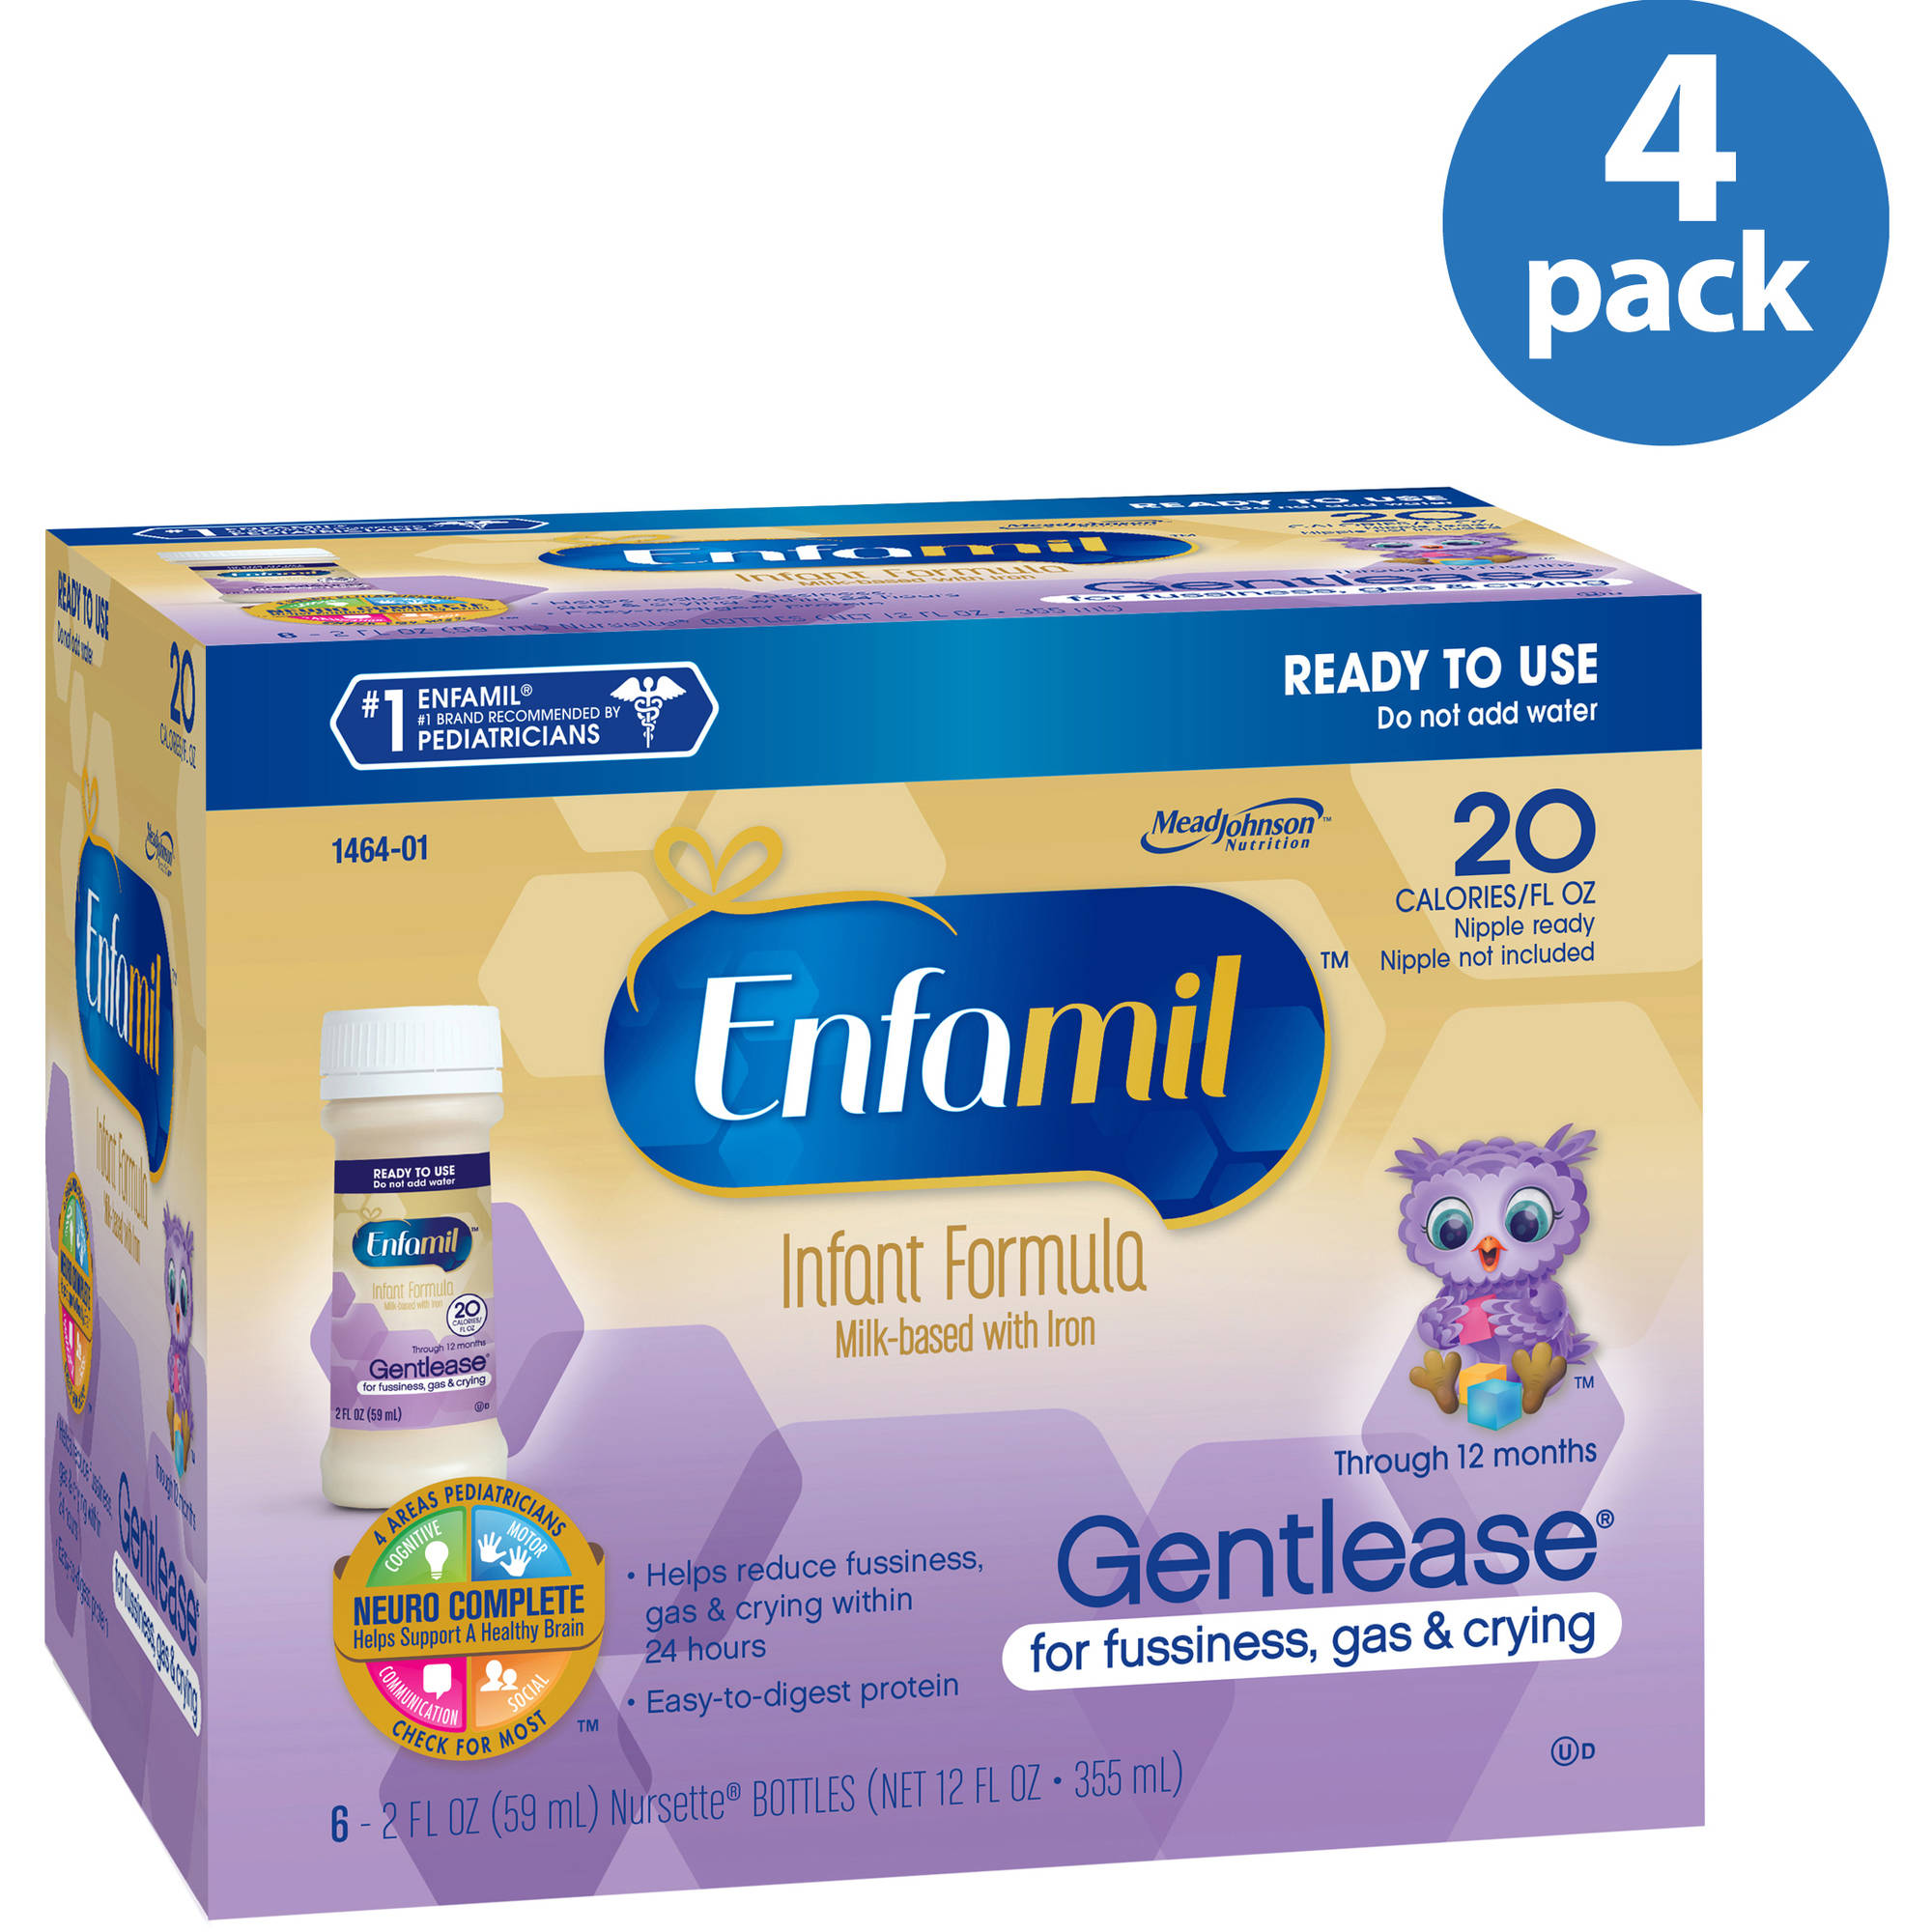 Enfamil Gentlease baby formula -  2 fl oz 20 Calorie Plastic Nursette  Bottles - 6ct, Pack of 4